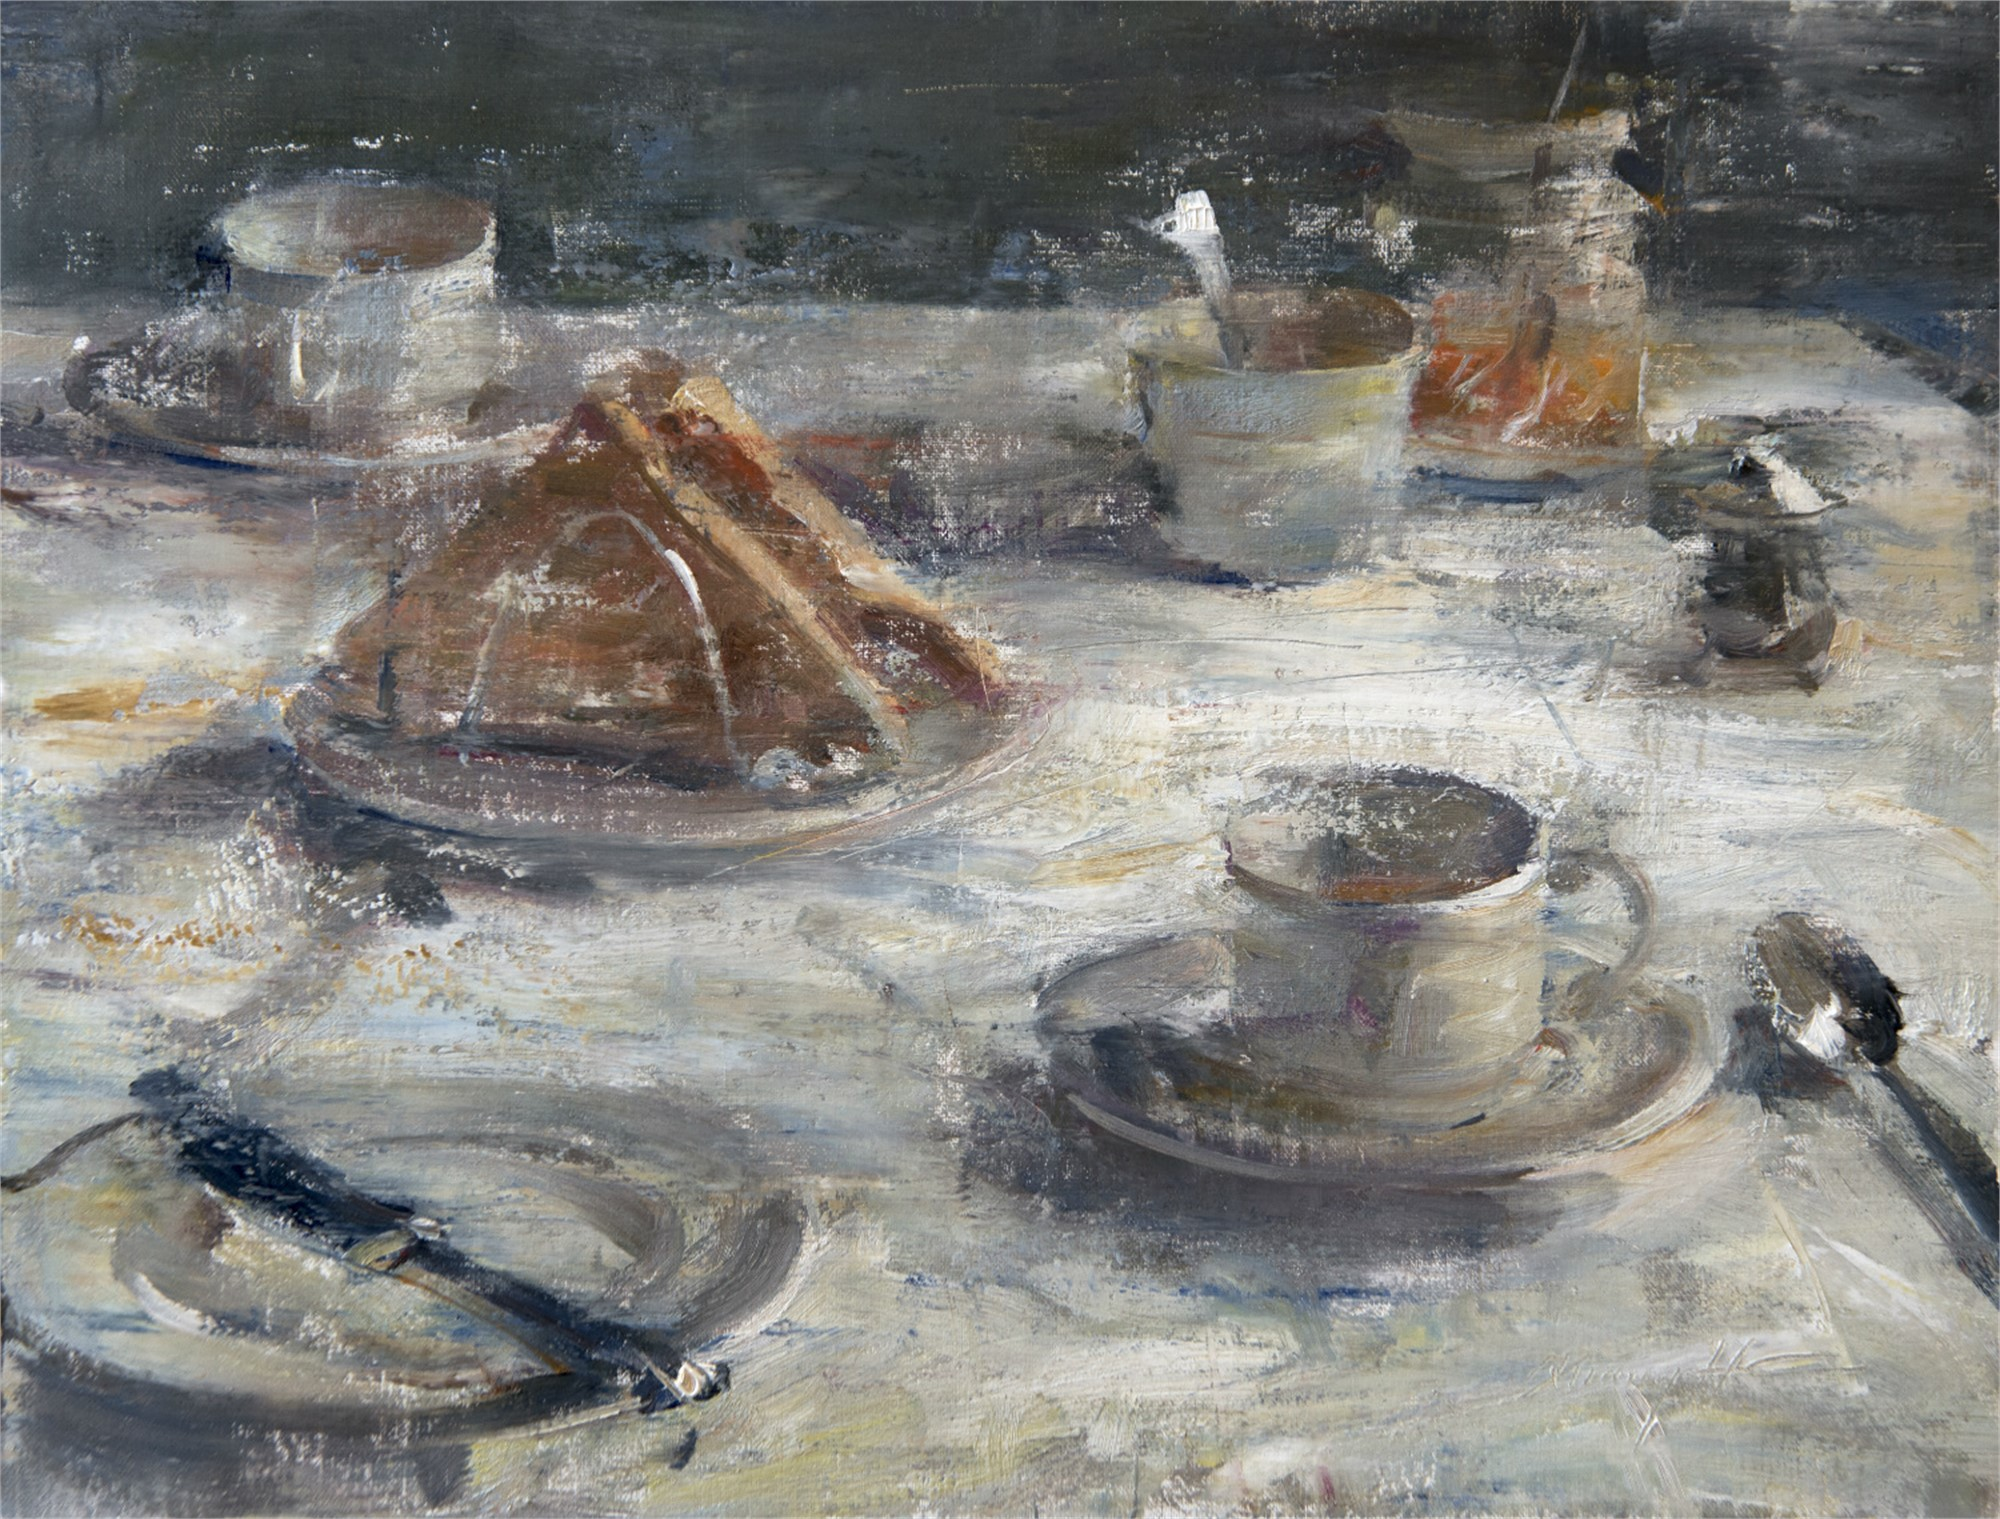 Toast, Jam, Coffee by Quang Ho